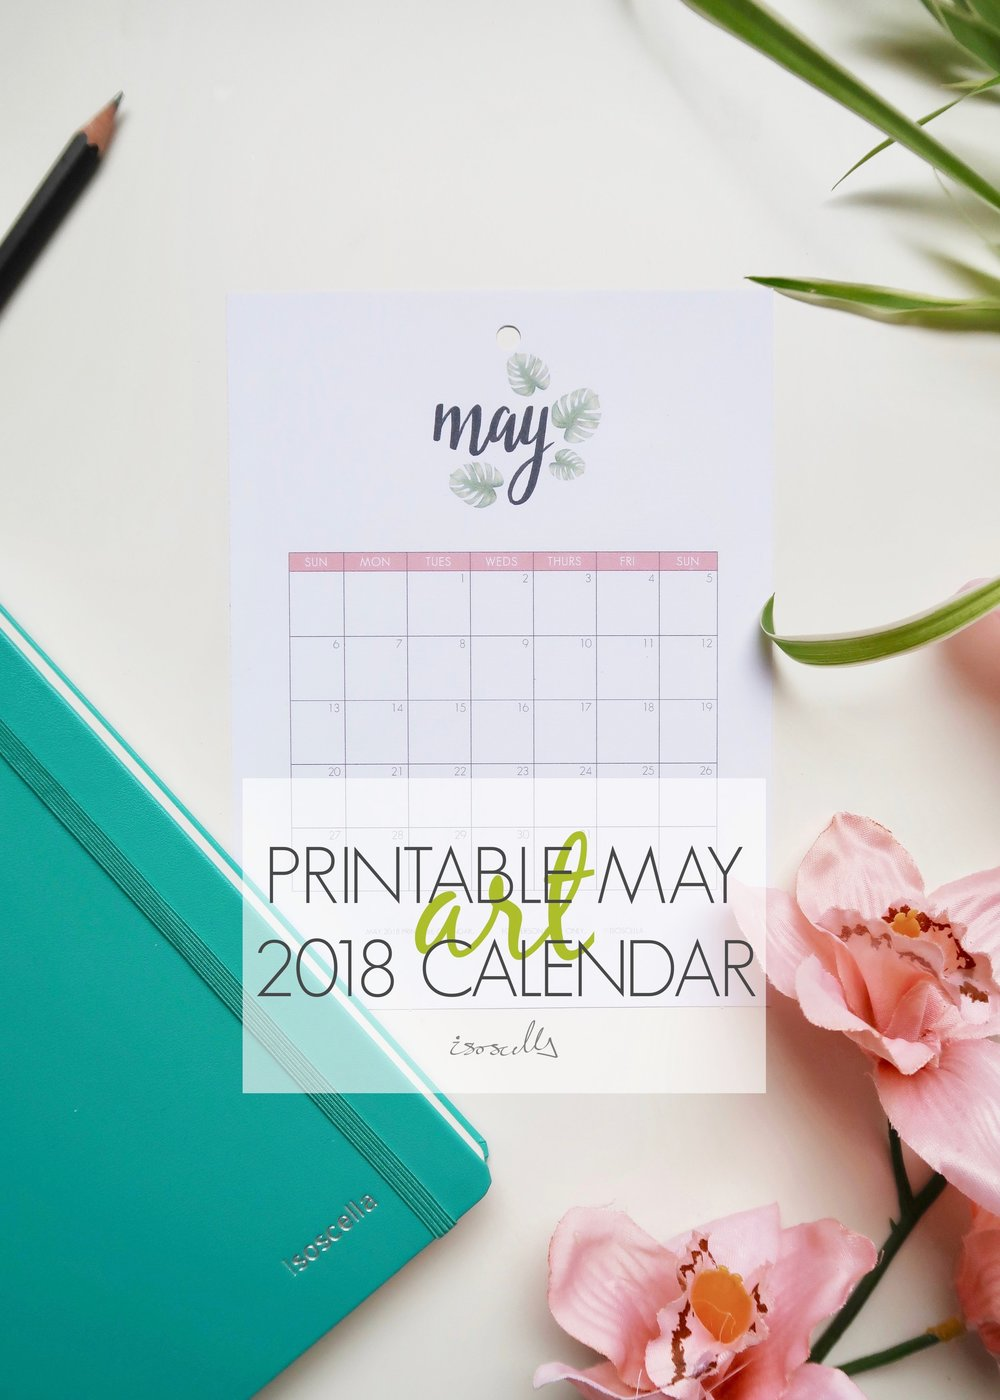 Printable May 2018 Calendar - Isoscella